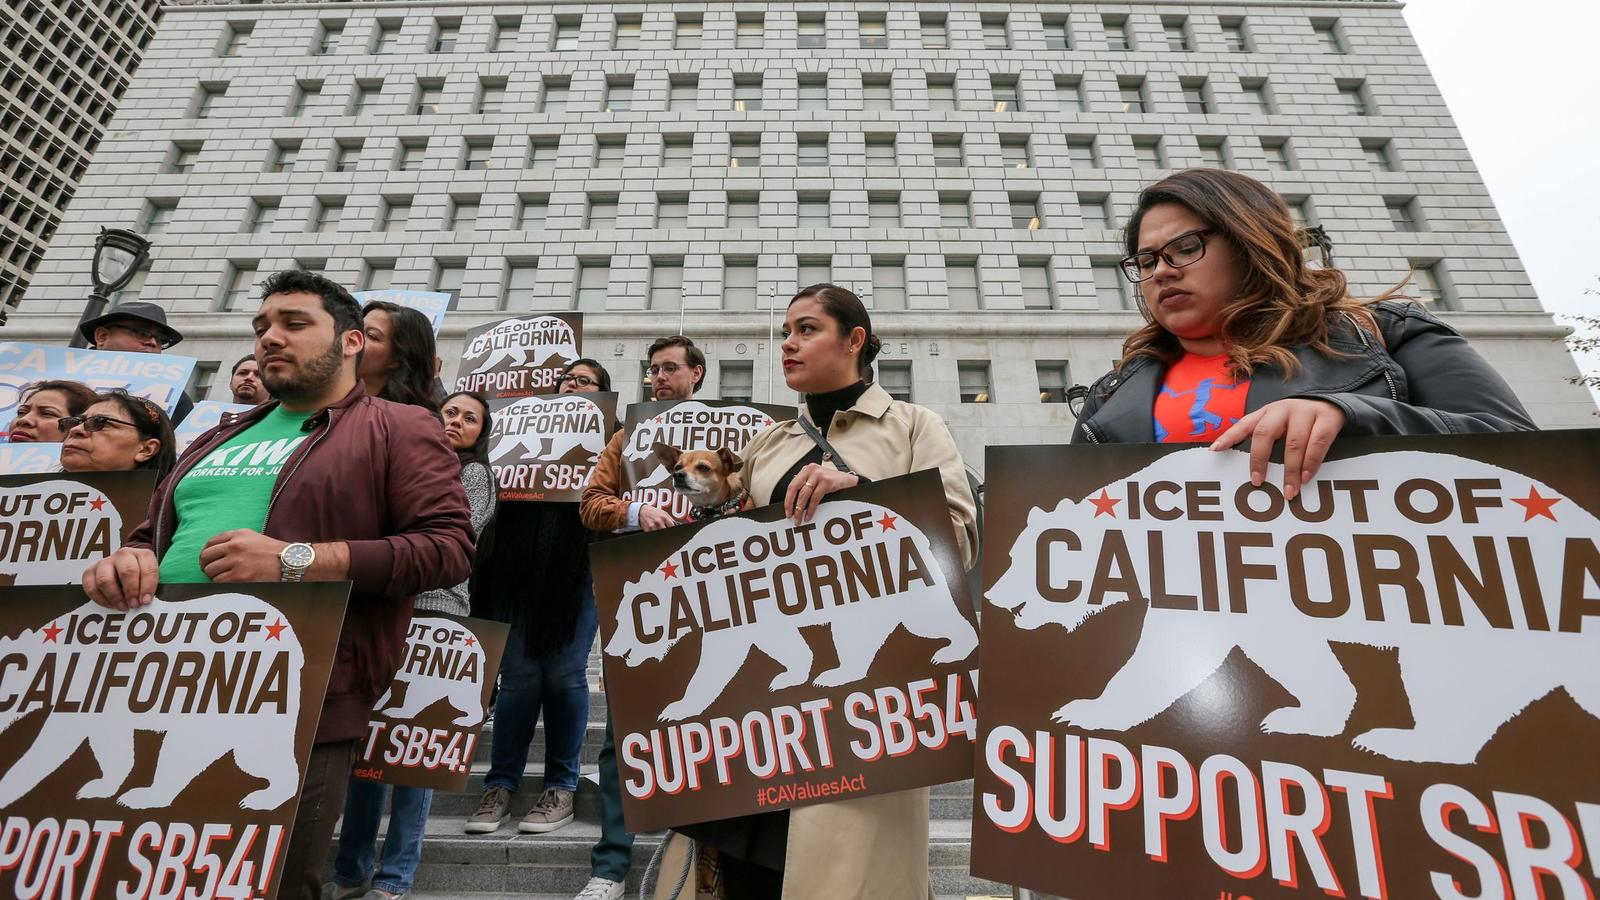 Supporters of state sanctuary bill SB 54 rally outside the Hall of Justice. (Irfan Khan / Los Angeles Times)